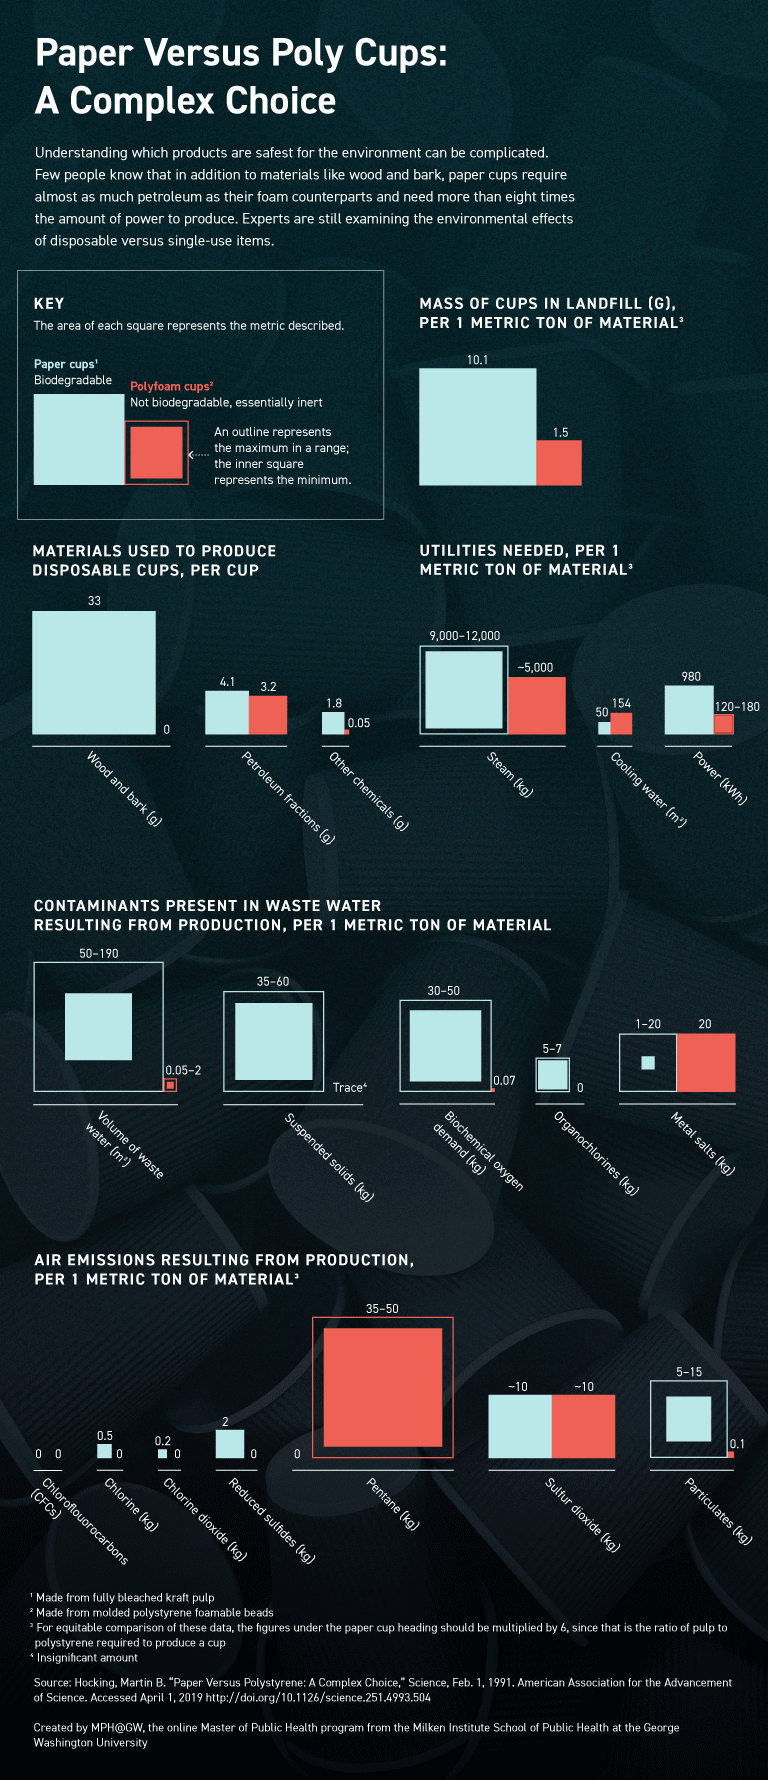 Chart comparing the amount of raw materials, utilities, and water and air emissions from disposable cup production.